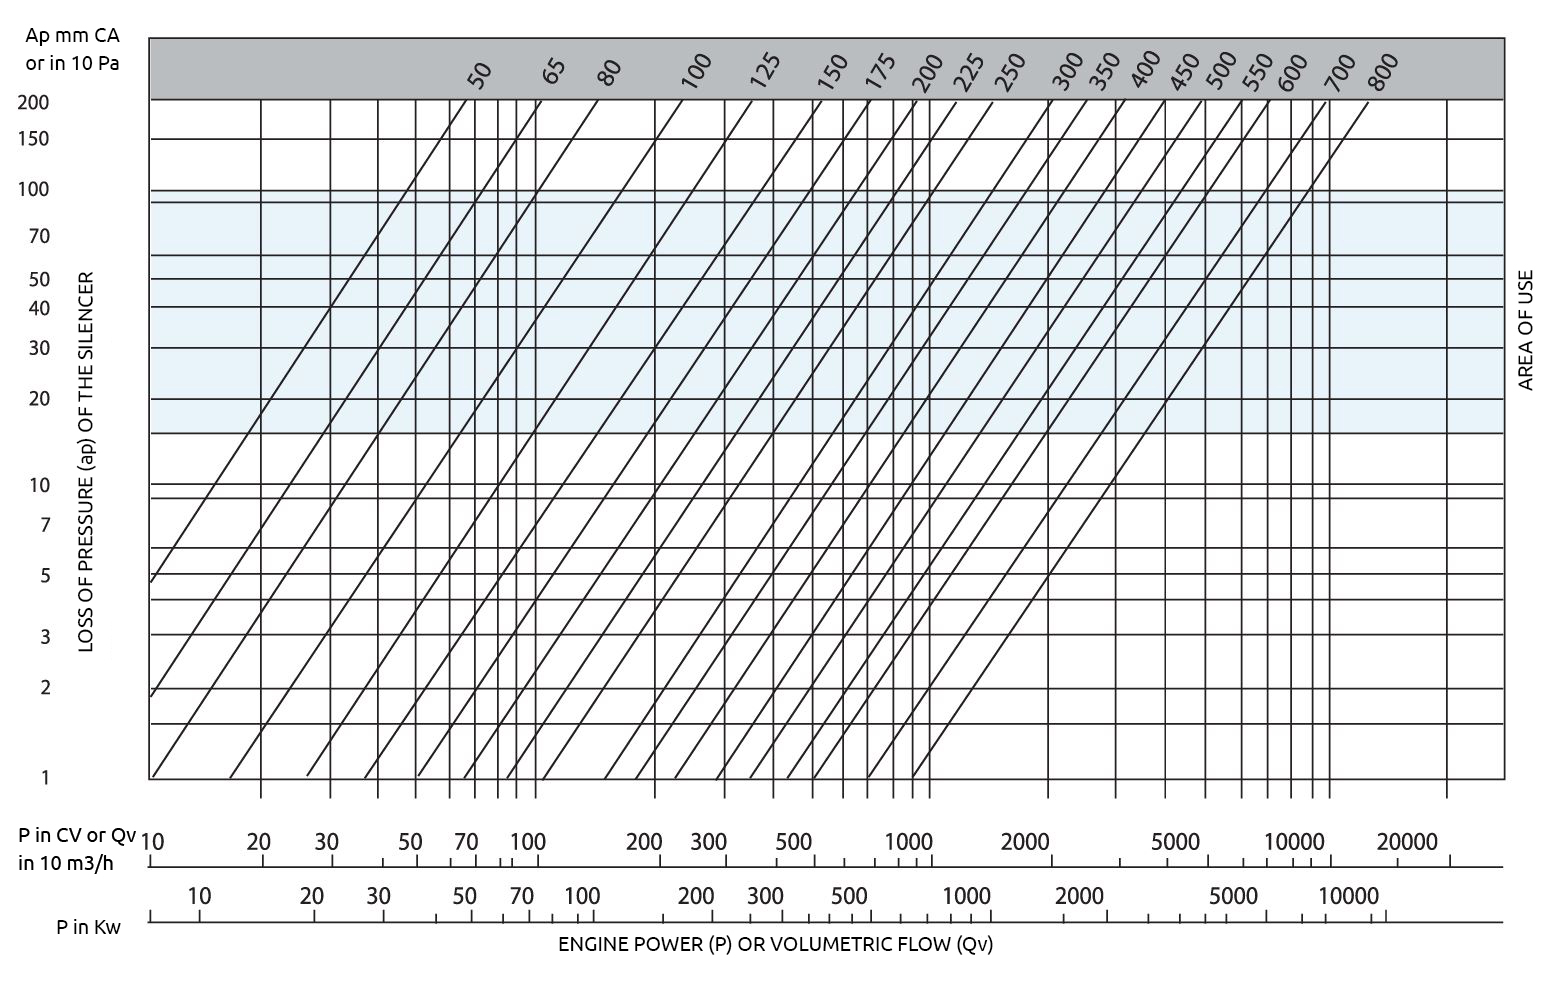 Sm25 acoustic silencer insulation table. Relating power or volumetric flow of the engine and the loss of load of the acoustic silencer, marking the area of use of this model